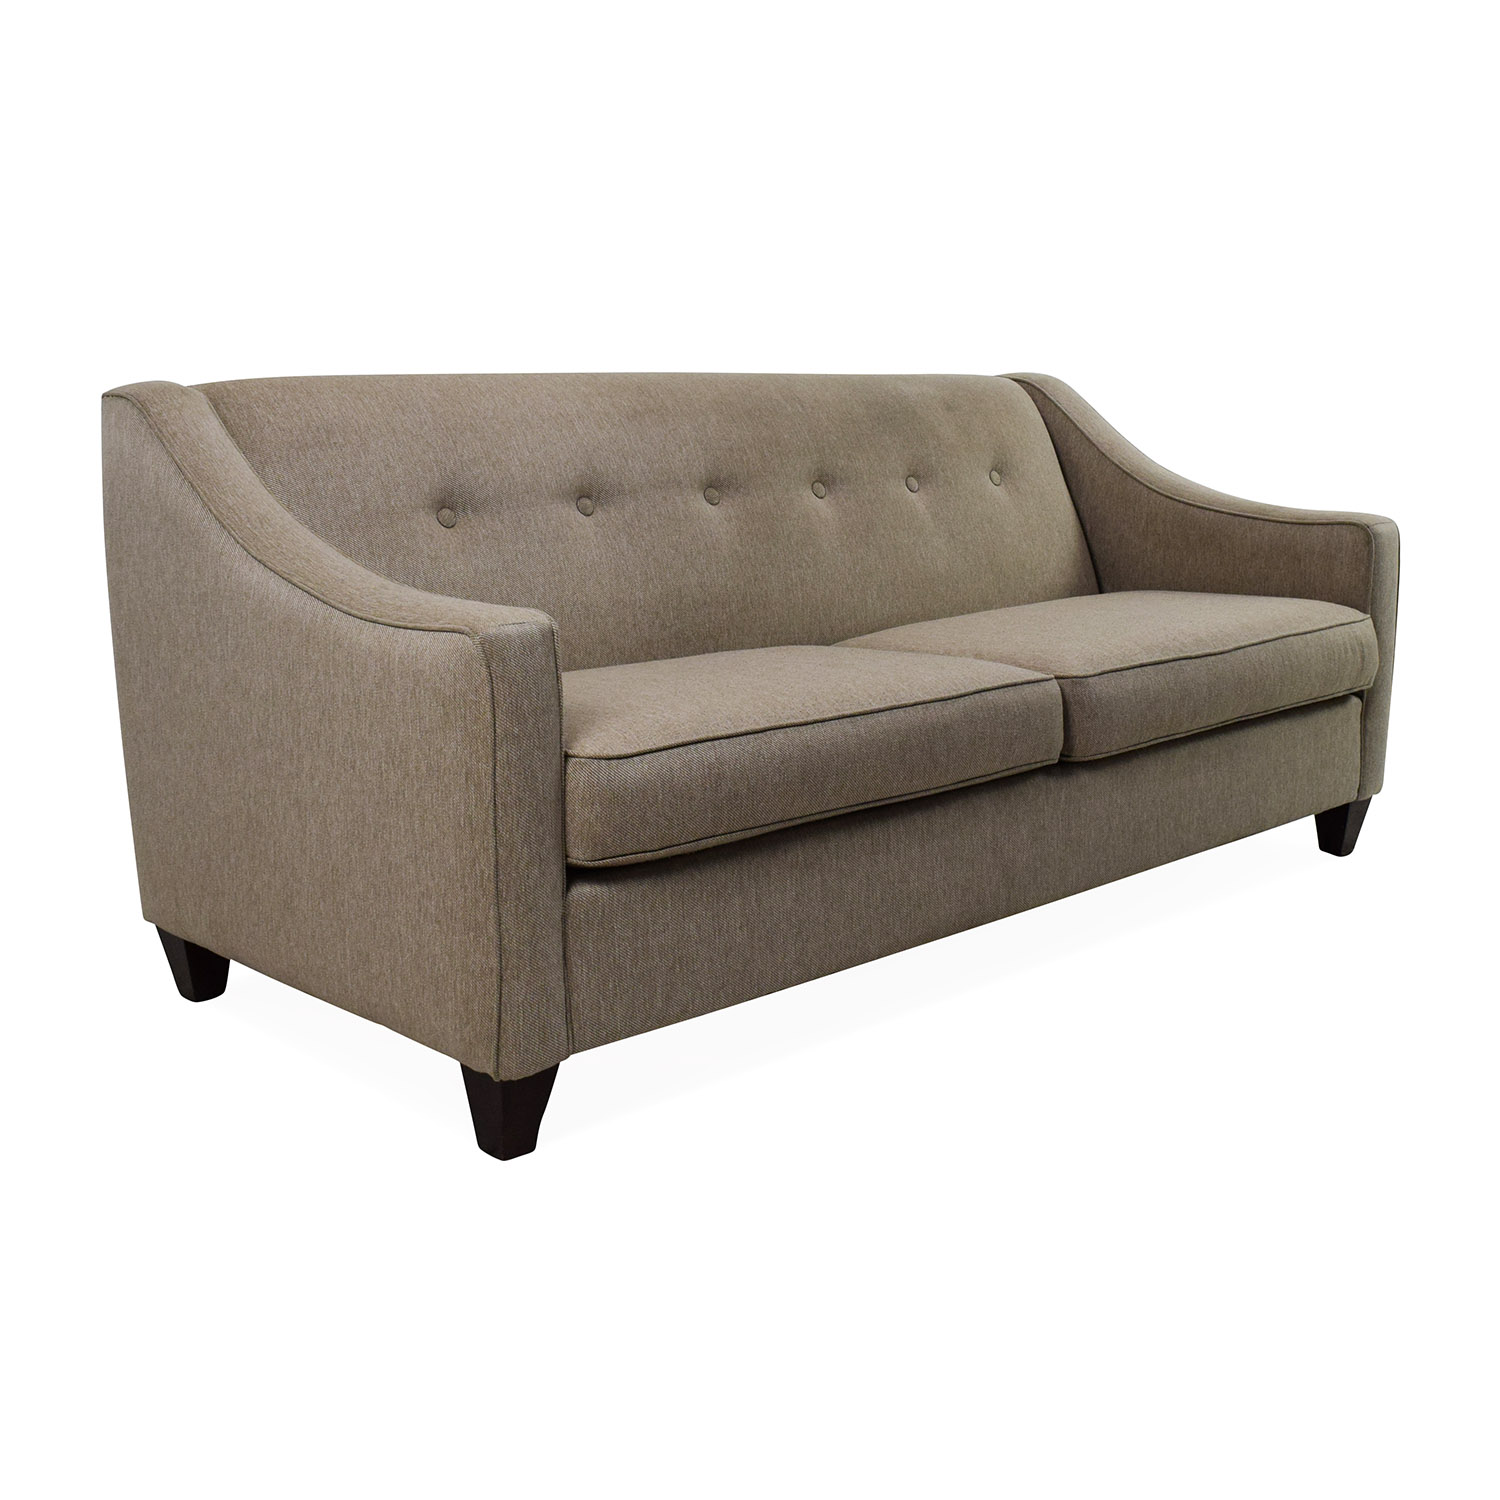 ... Raymour And Flanigan Raymour U0026 Flanigan Ashton Sofa Dimensions ...